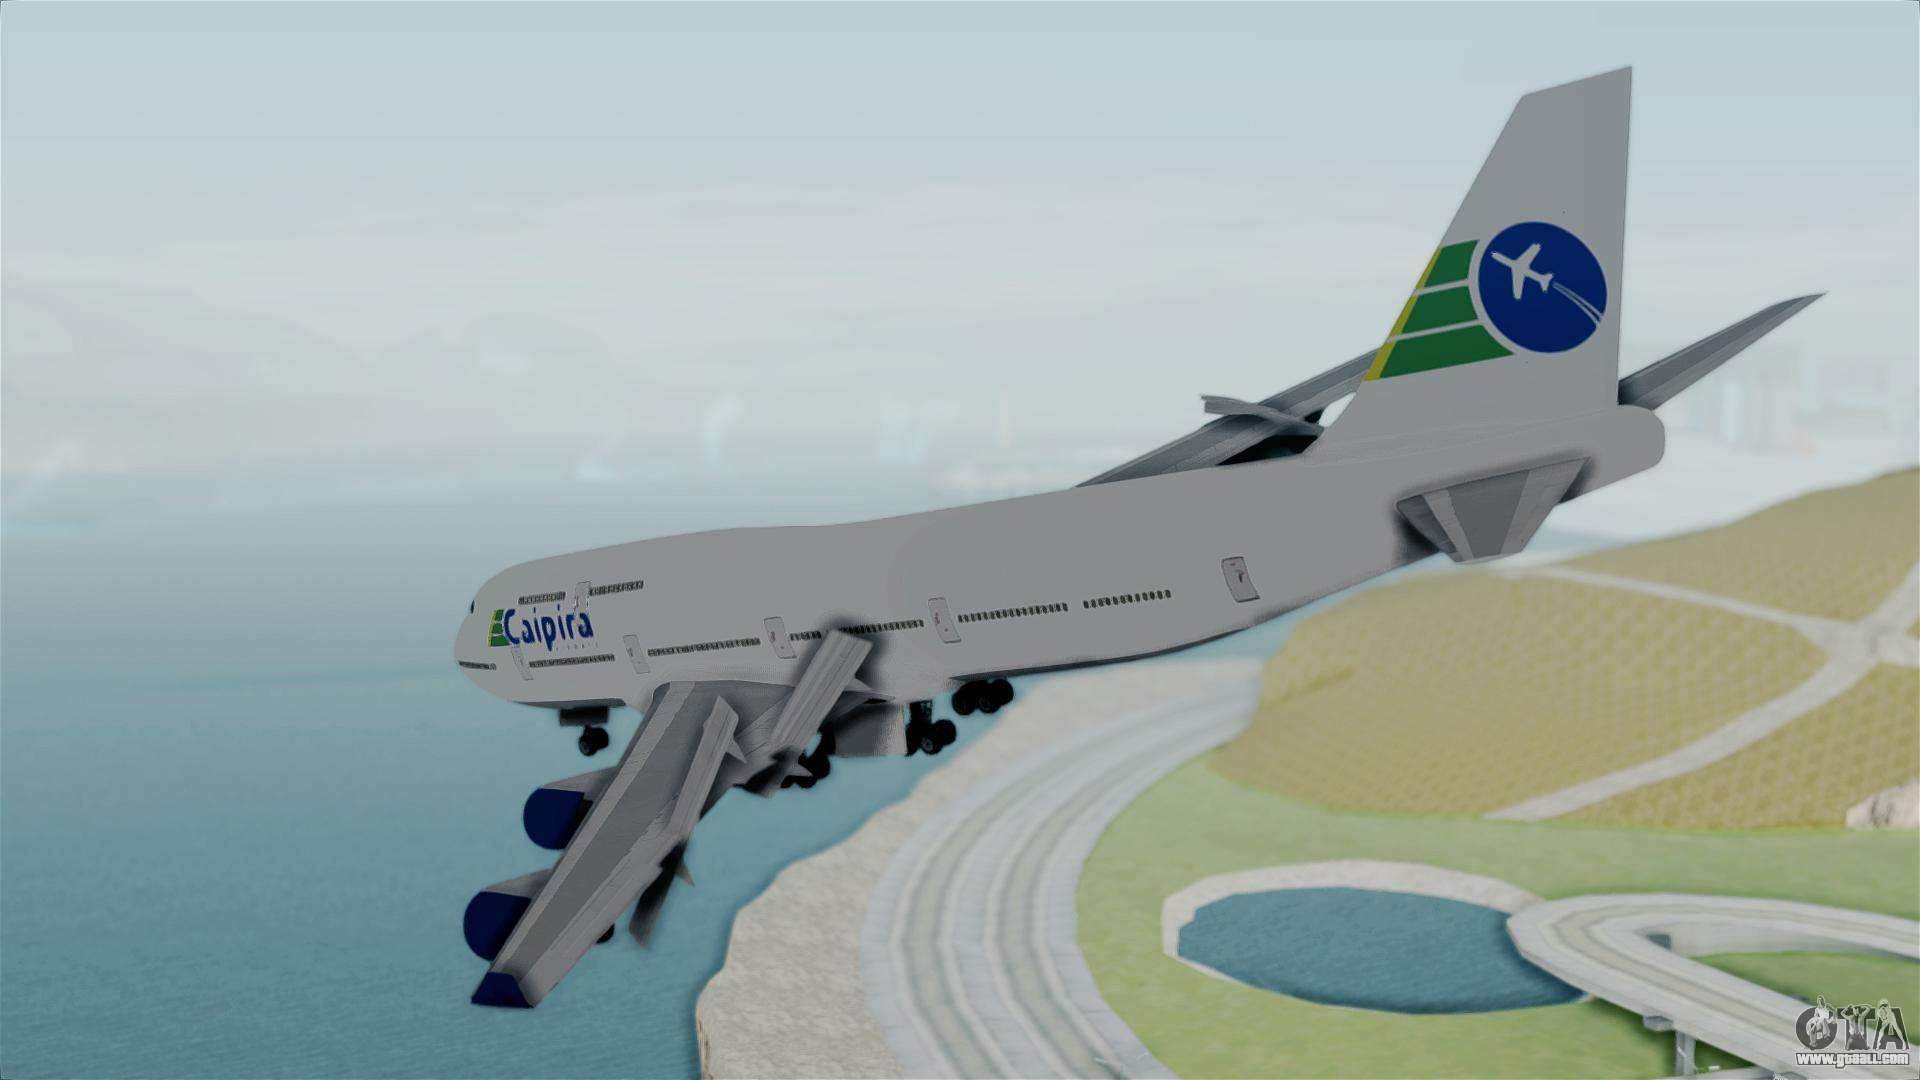 Jet Privato Gta 5 : Gta jumbo jet v caipira air for san andreas